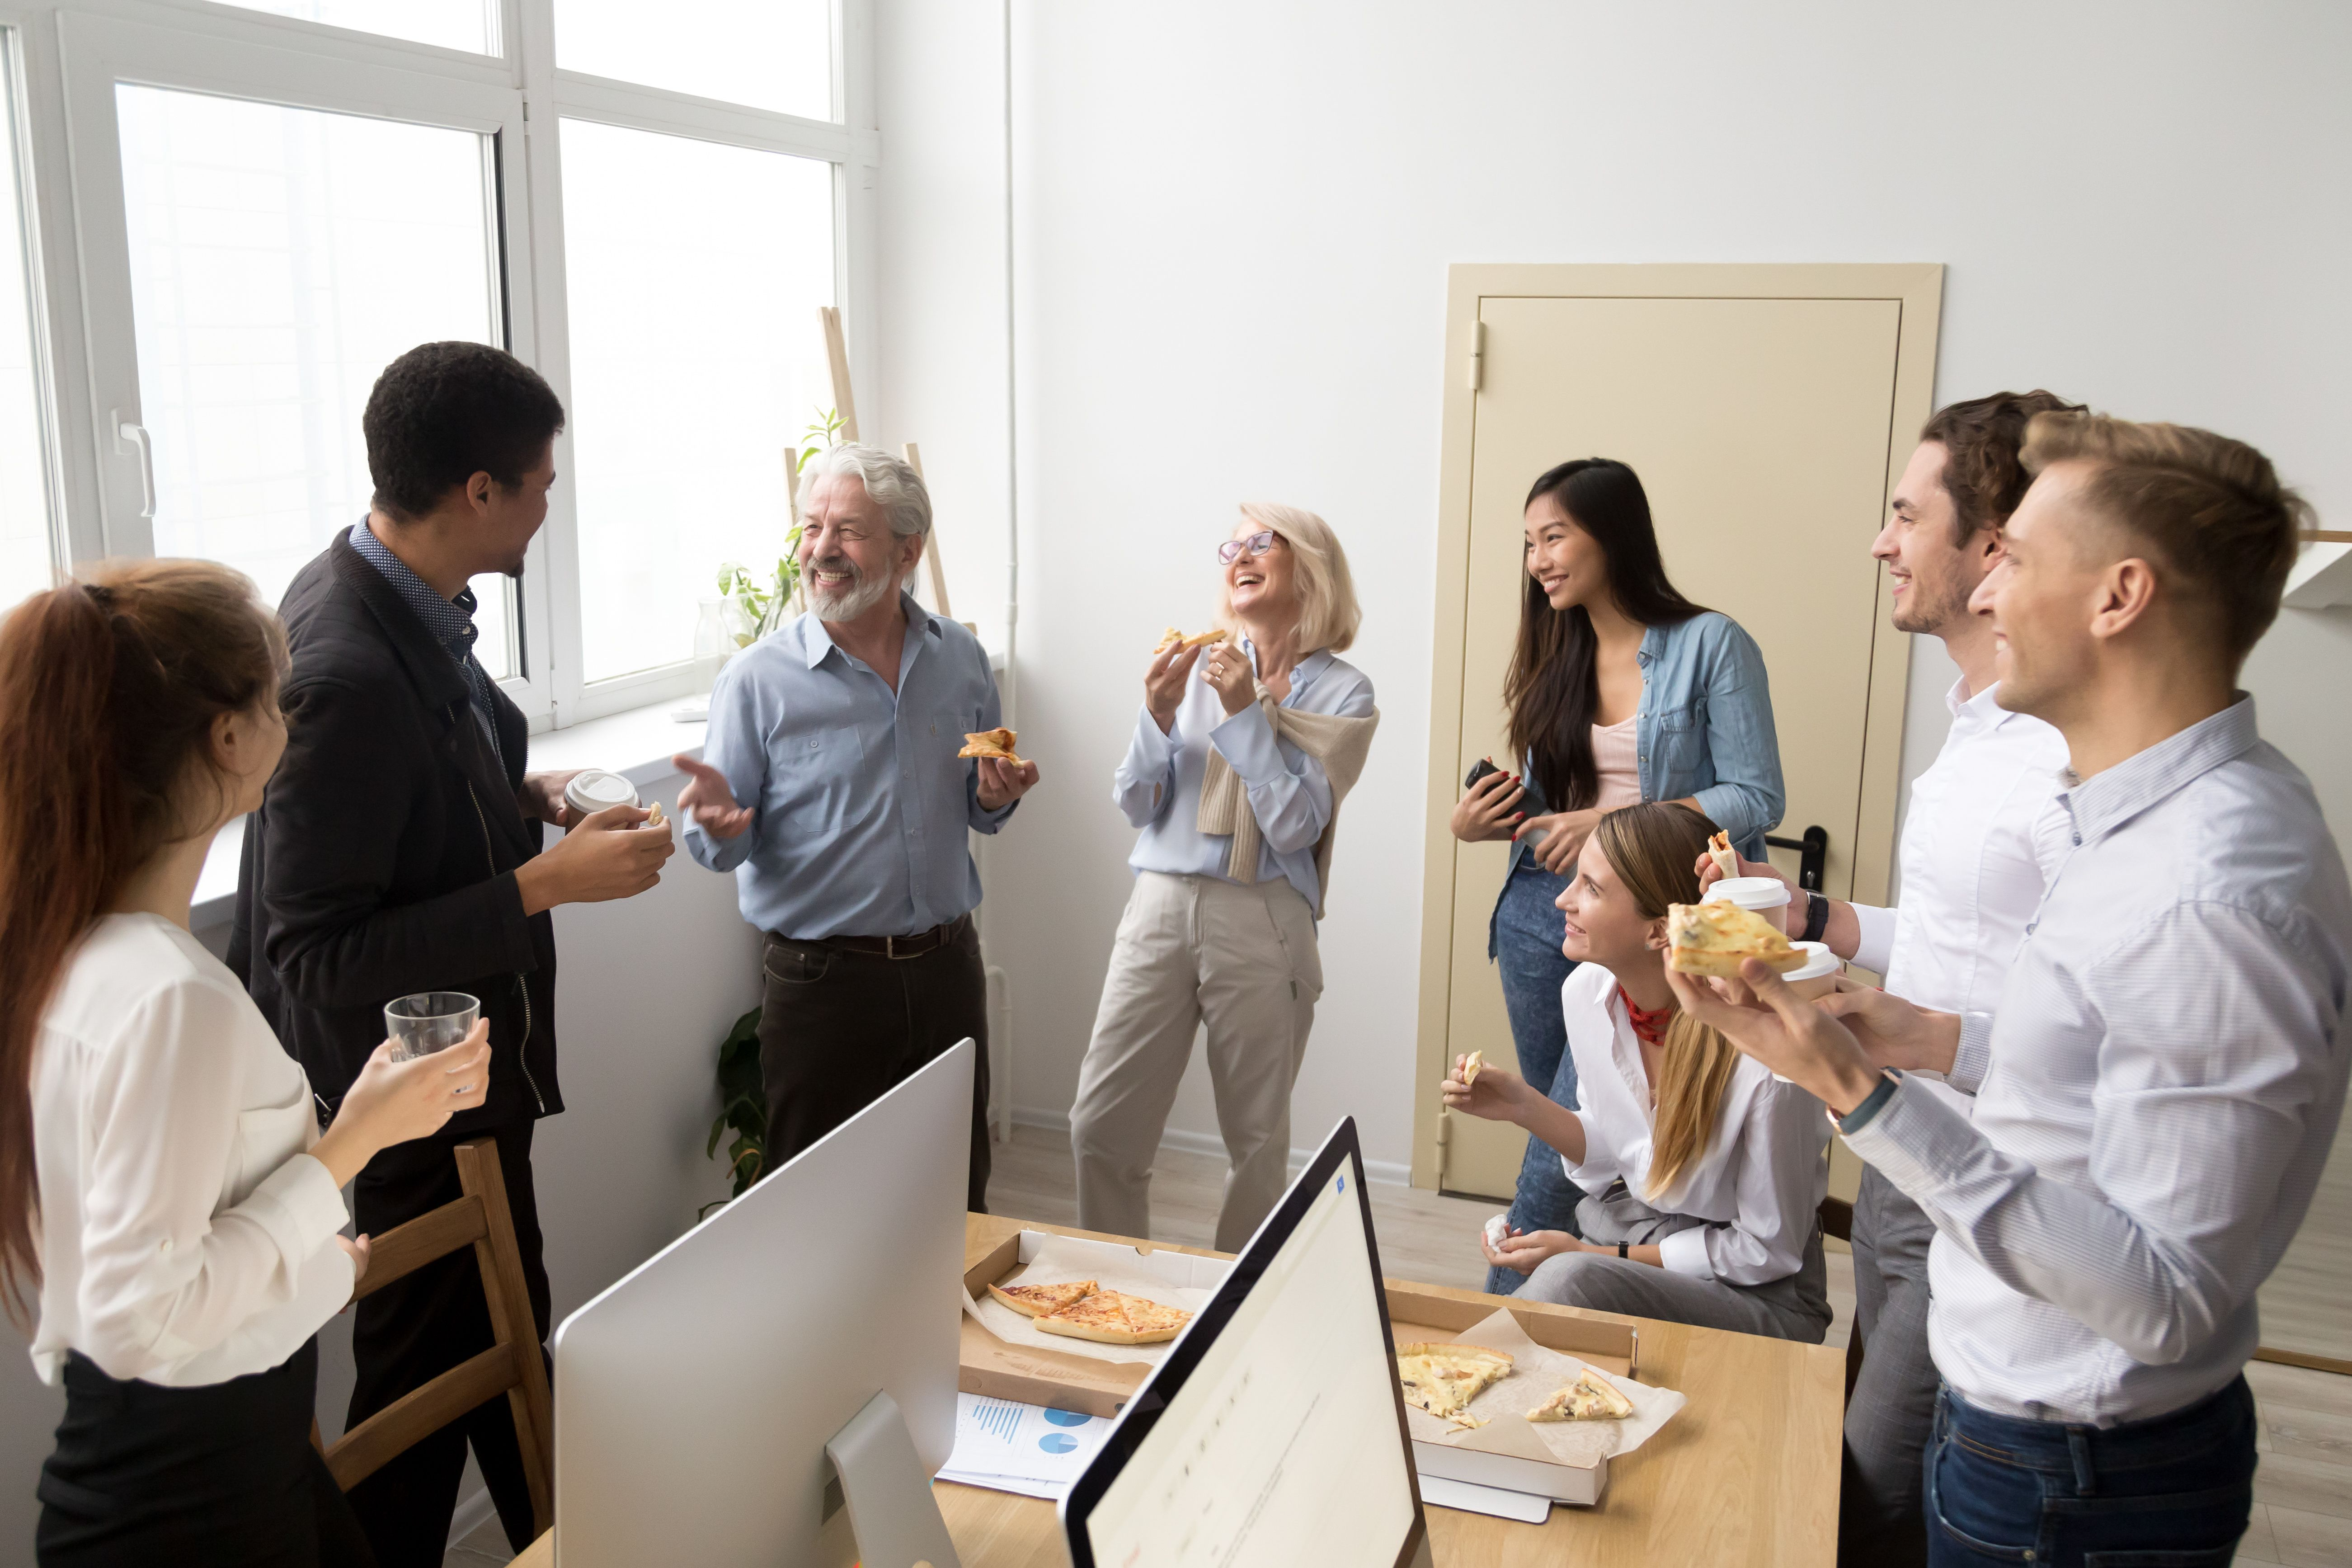 A company celebrating employees' successes